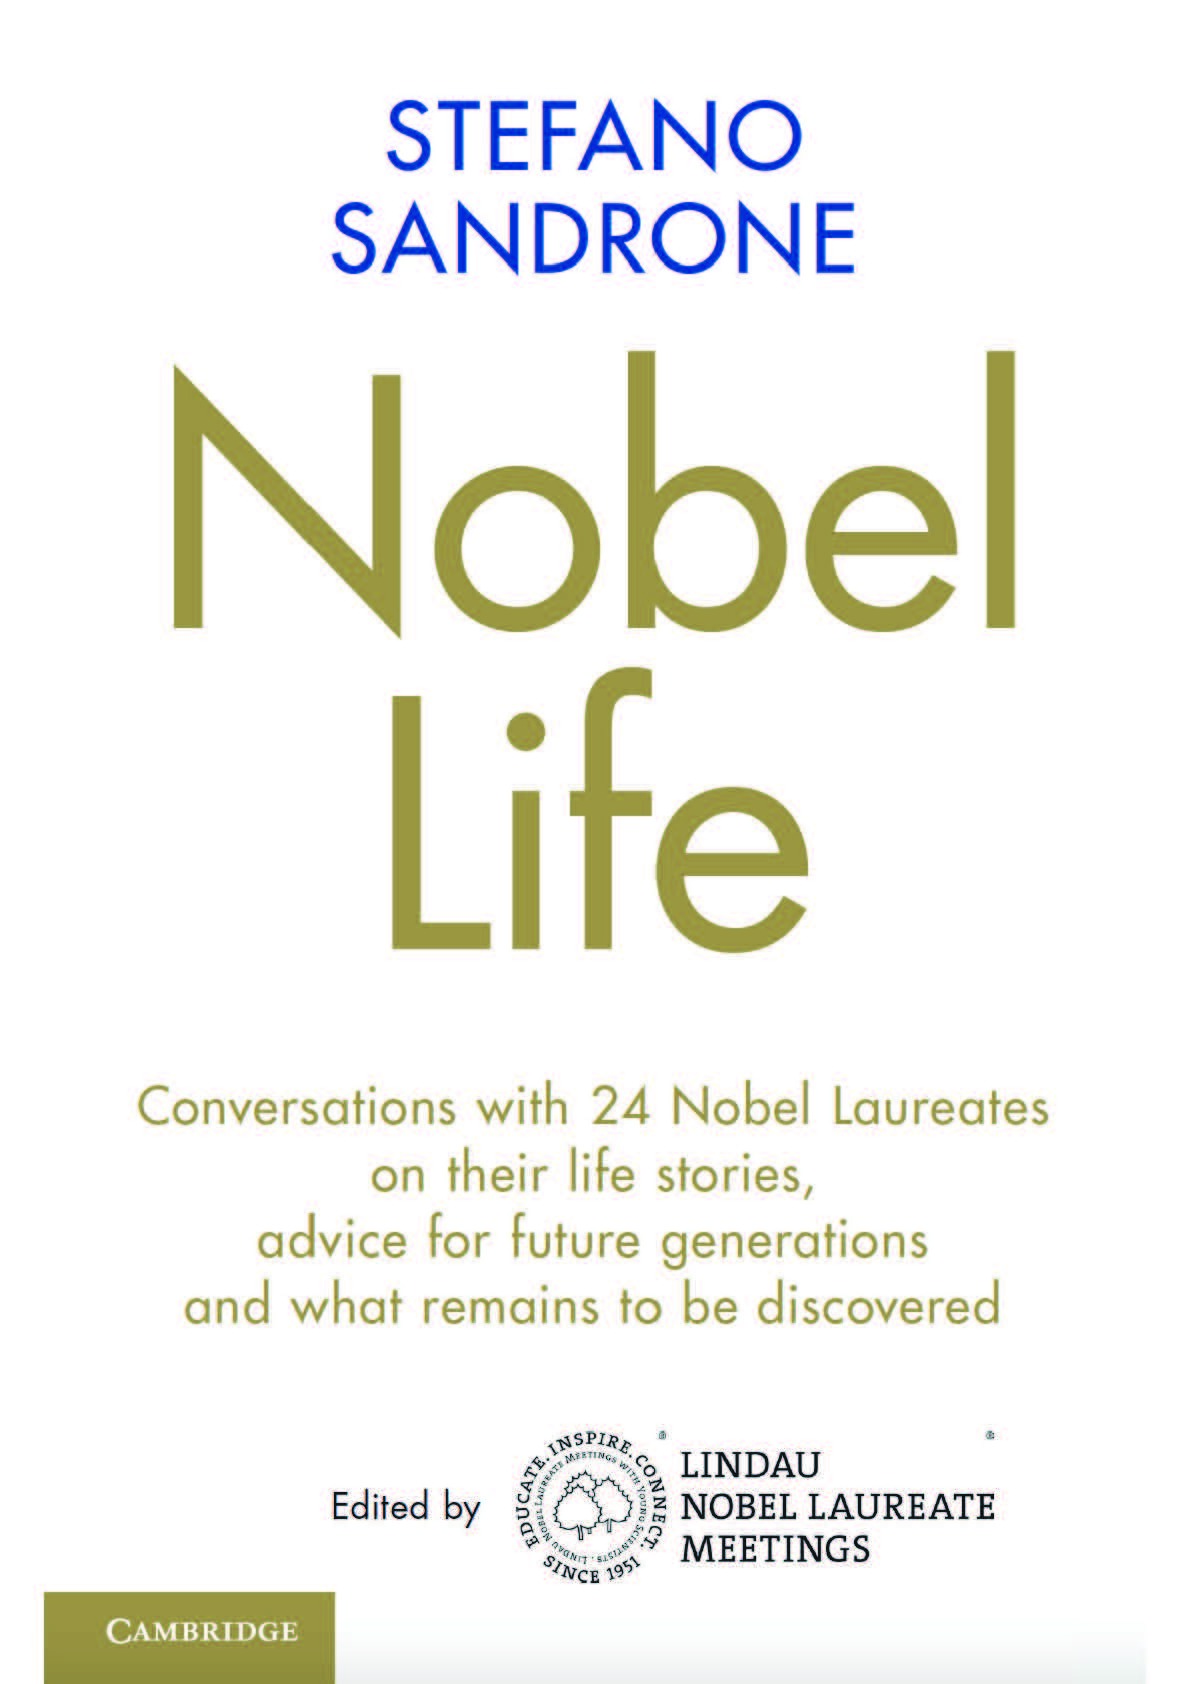 The book cover of Nobel Life: The Title in gold and black letter center, the logos of the Lindau Meetings and Cambridge University Press below